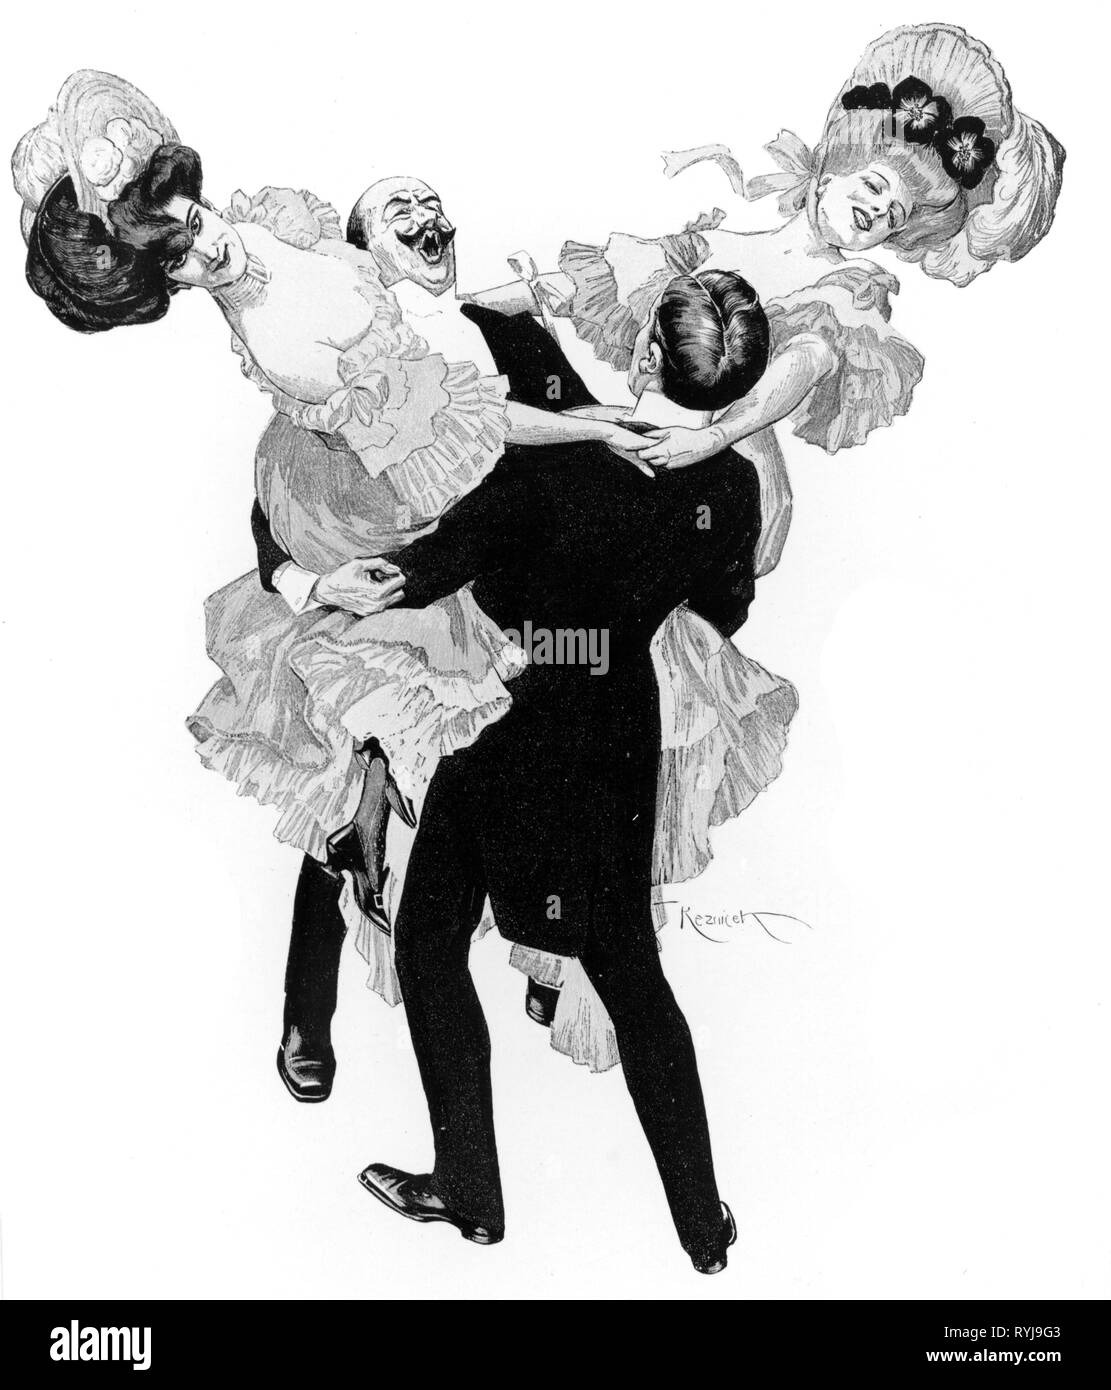 dance, Munich Francaise, 'South of the Danube', illustration by Ferdinand von Reznicek, circa 1905, Additional-Rights-Clearance-Info-Not-Available - Stock Image